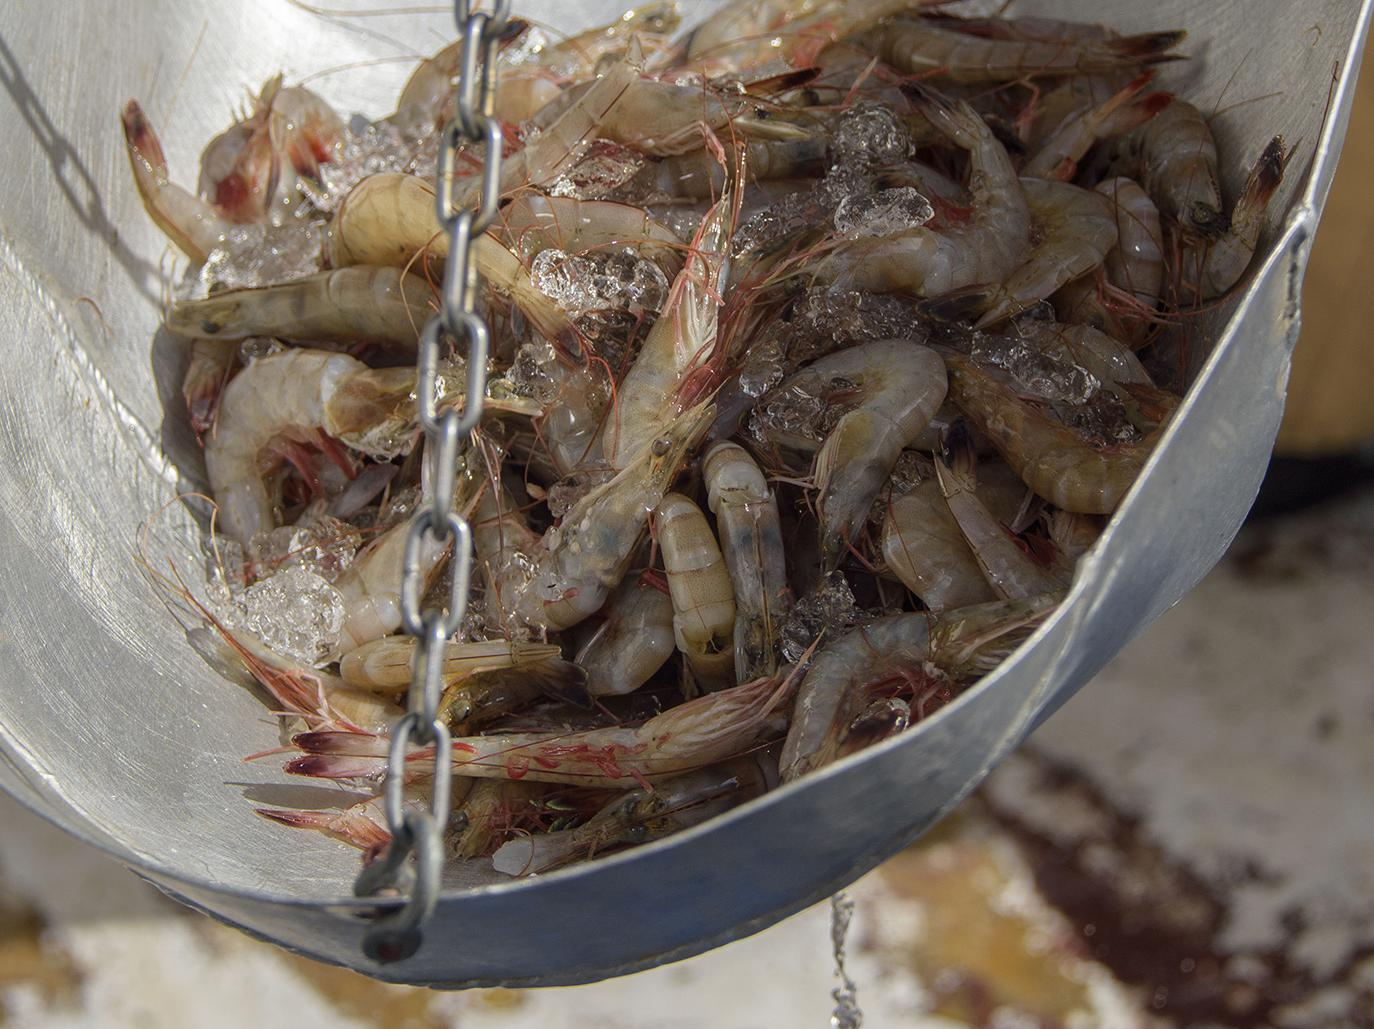 Mississippi's shrimp season, which opened June 6, is mostly yielding small brown shrimp. However, hot weather and warmer water in the Gulf is creating ideal growing conditions for the shrimp. (File Photo by MSU Extension Service/Kevin Hudson)